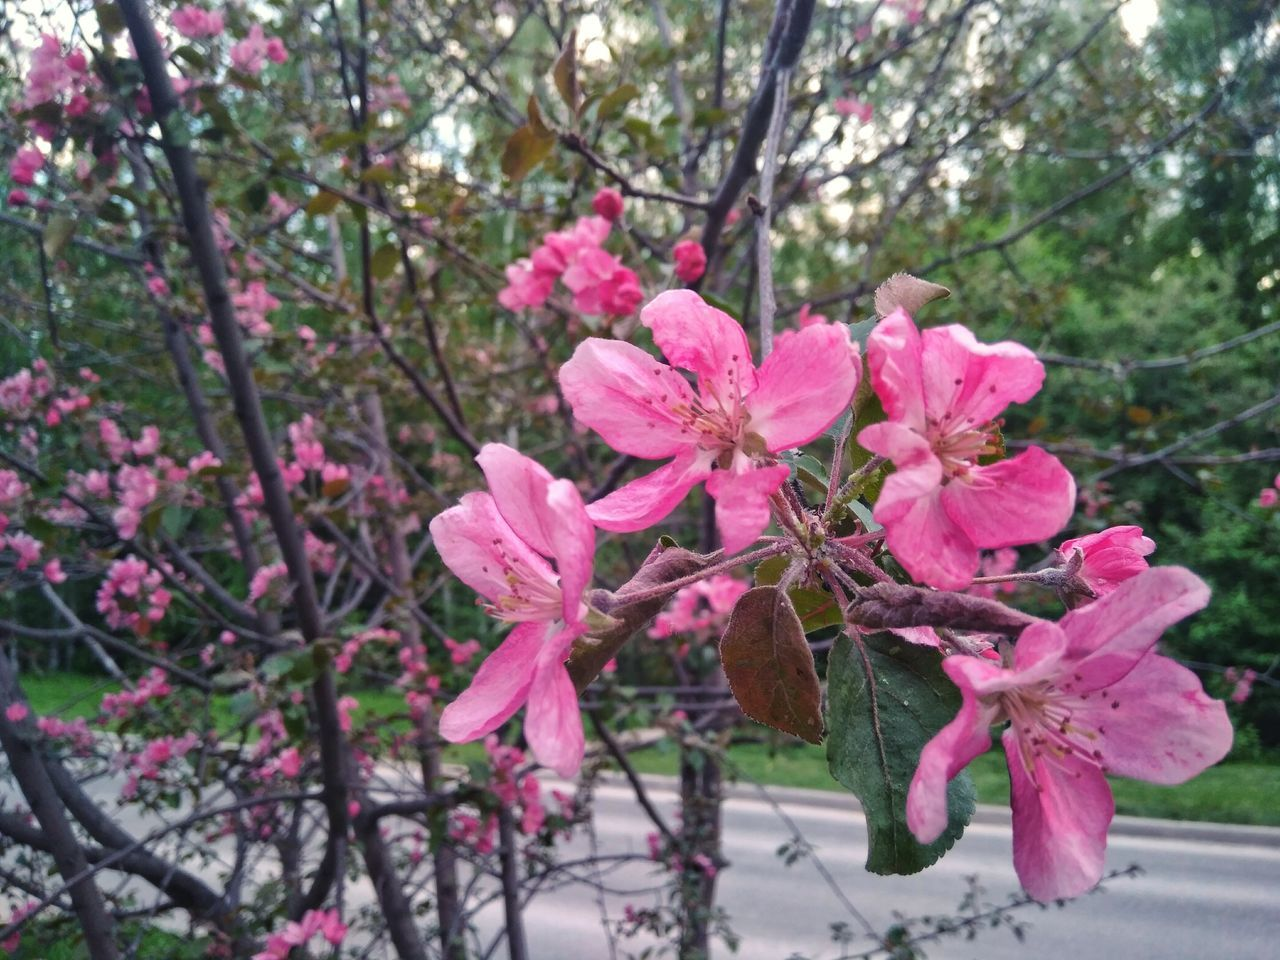 Pink Color Flower Tree Growth Nature Springtime Outdoors Flower Head Close-up Freshness Beauty In Nature Fragility Branch Plant Simplicity Apple Blossom Blooming Flowerporn Flourishing Tenderness No People Apple Tree Idyllic Wanderlust Tranquility